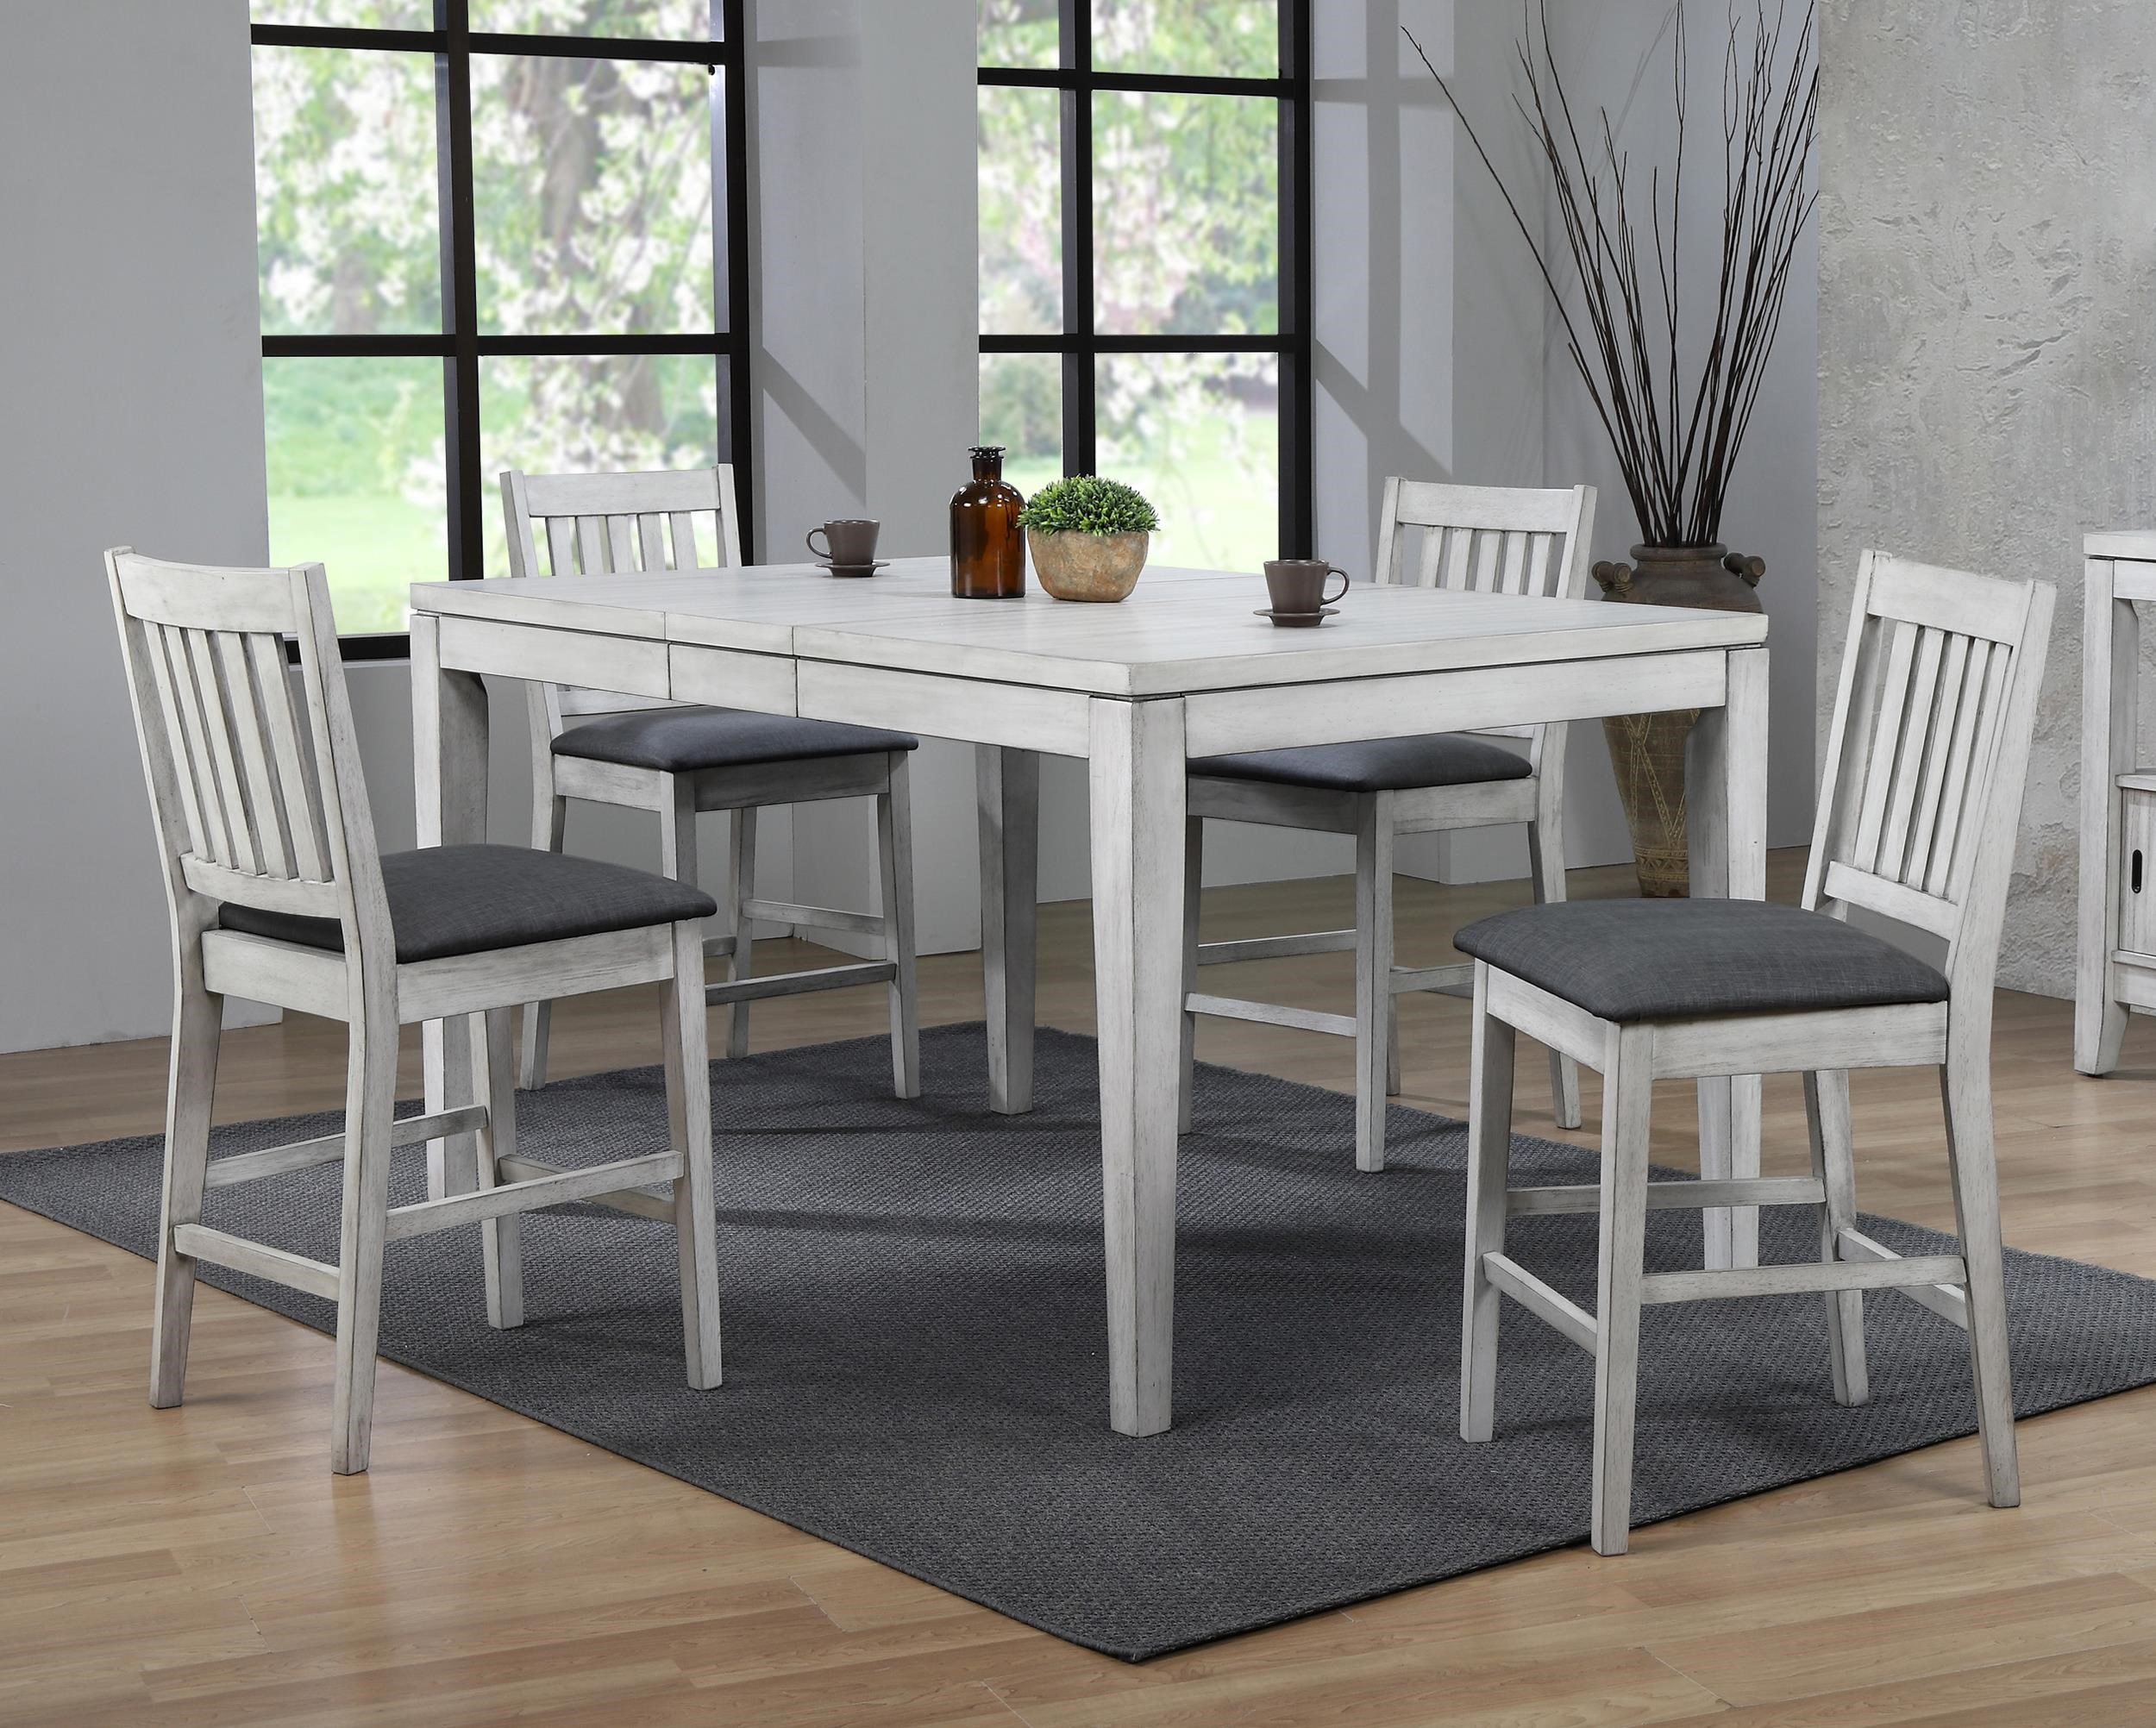 Summer Winds 5 Piece Counter Height Dining Room by E.C.I. Furniture at Wayside Furniture